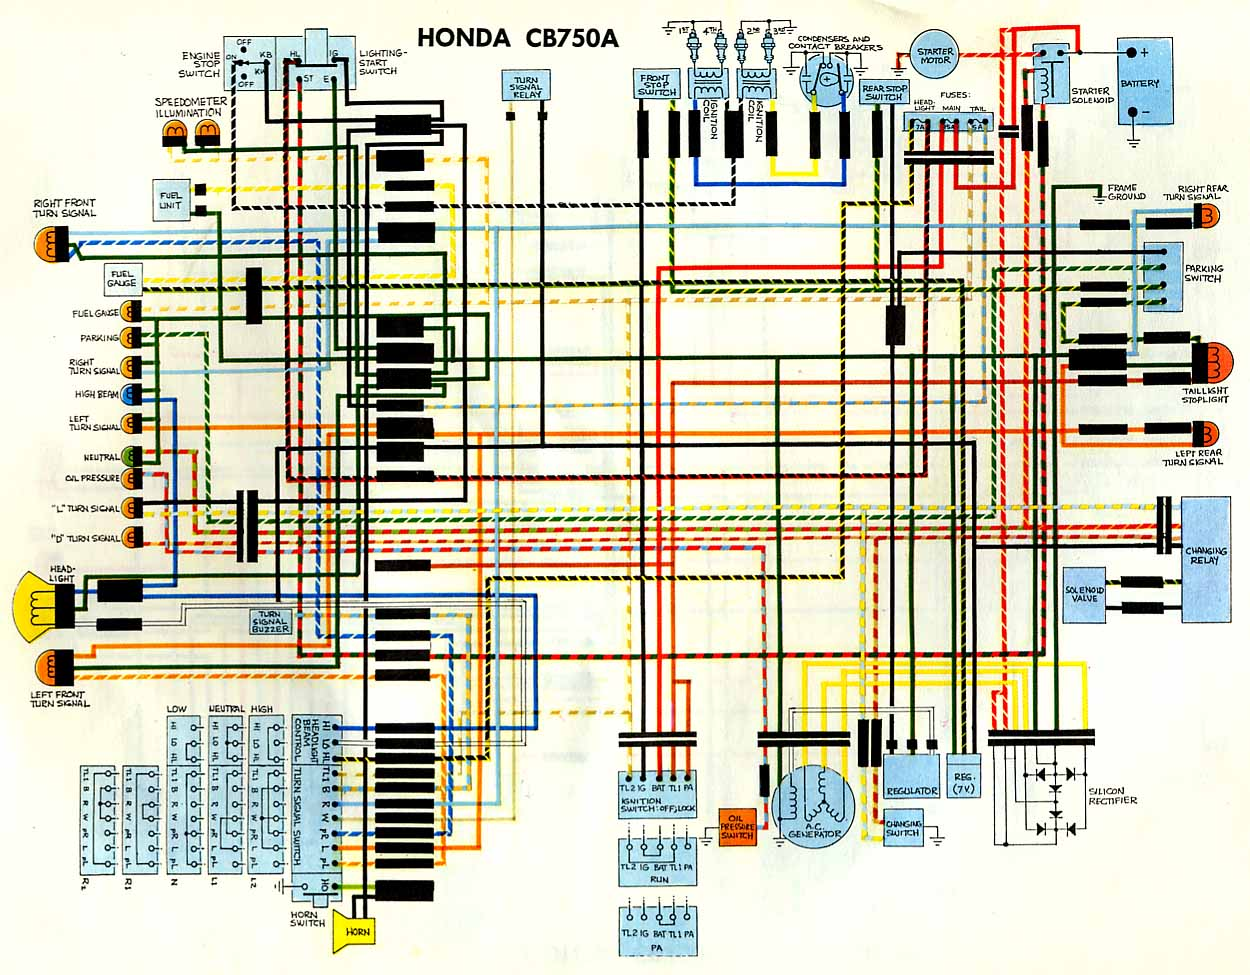 [TVPR_3874]  XF_7546] Picture 6 Of 6 From Honda Cb750 Wiring Diagrams Wiring Diagram | Honda Cb750 Wiring |  | Inrebe Hyedi Mohammedshrine Librar Wiring 101